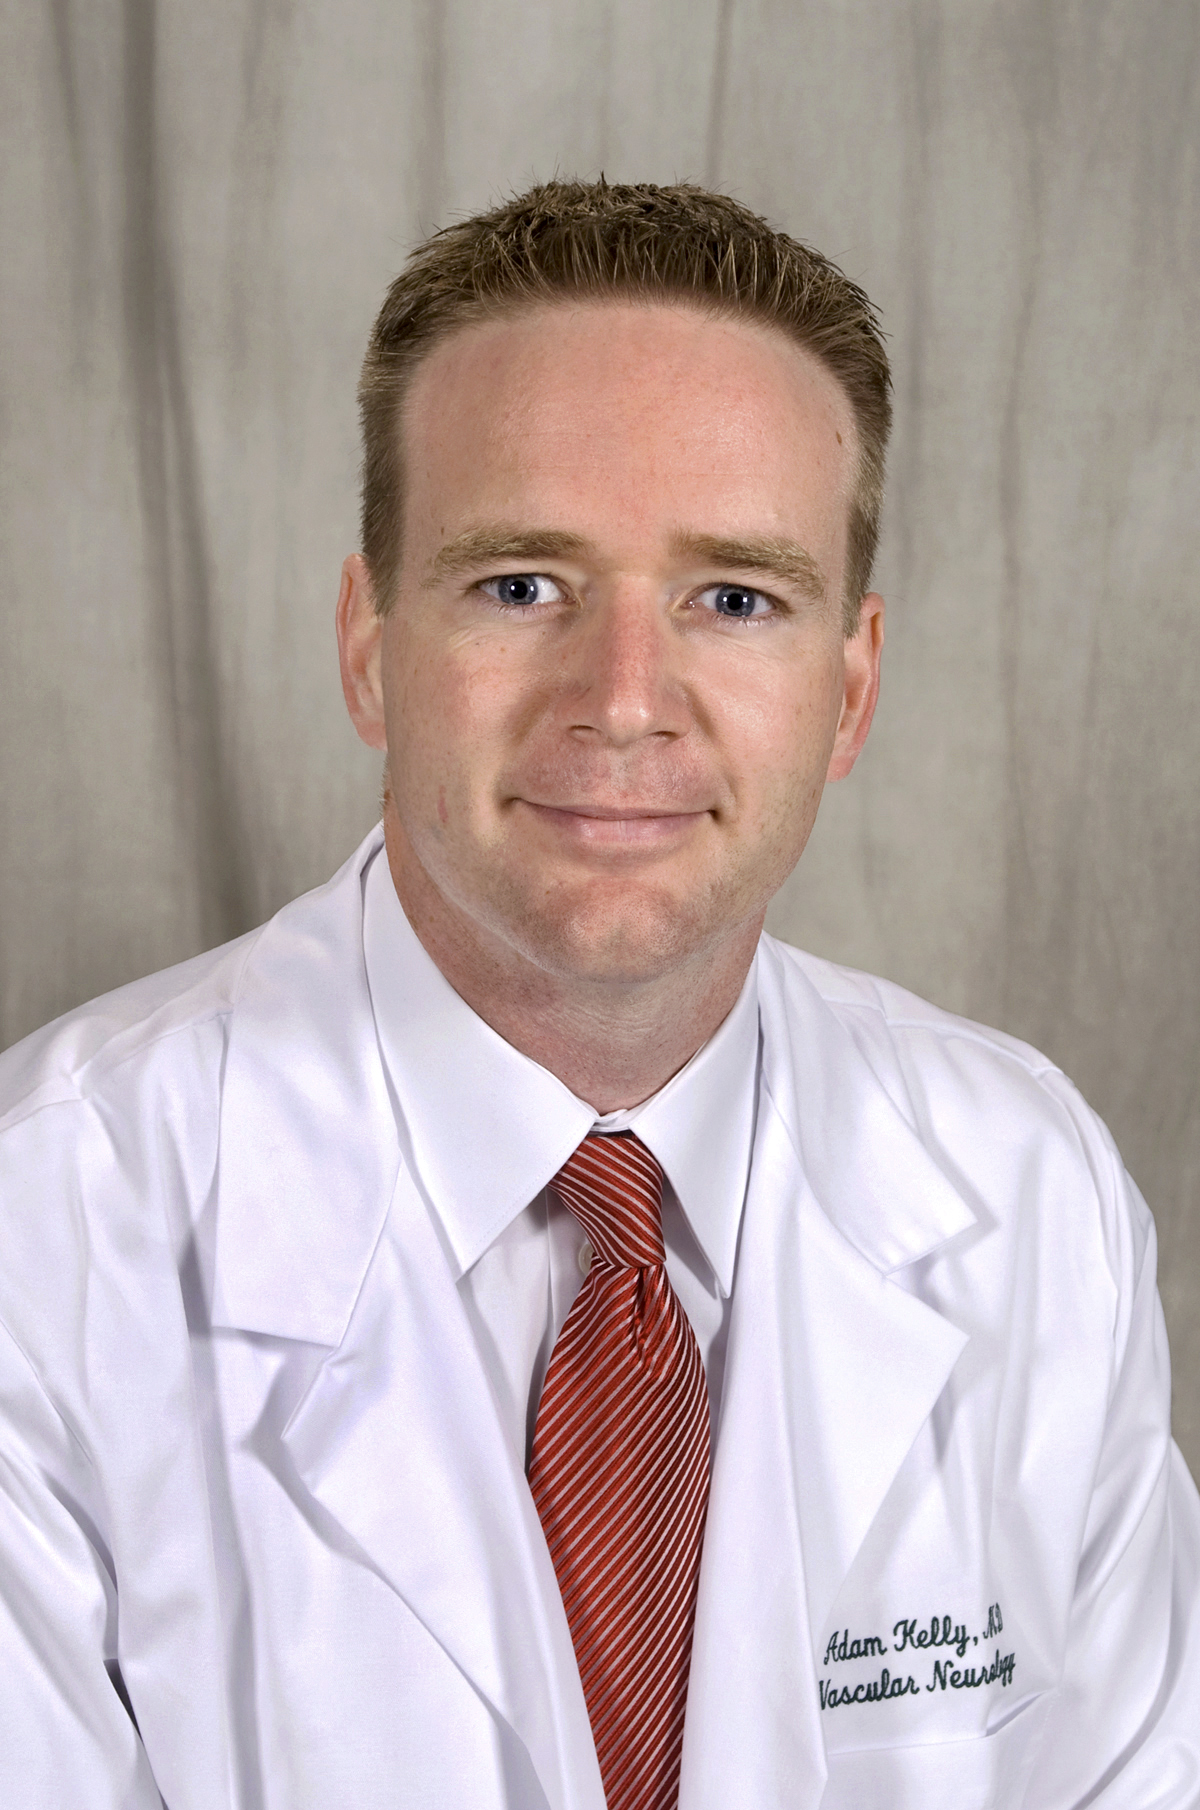 Dr. Adam Kelly